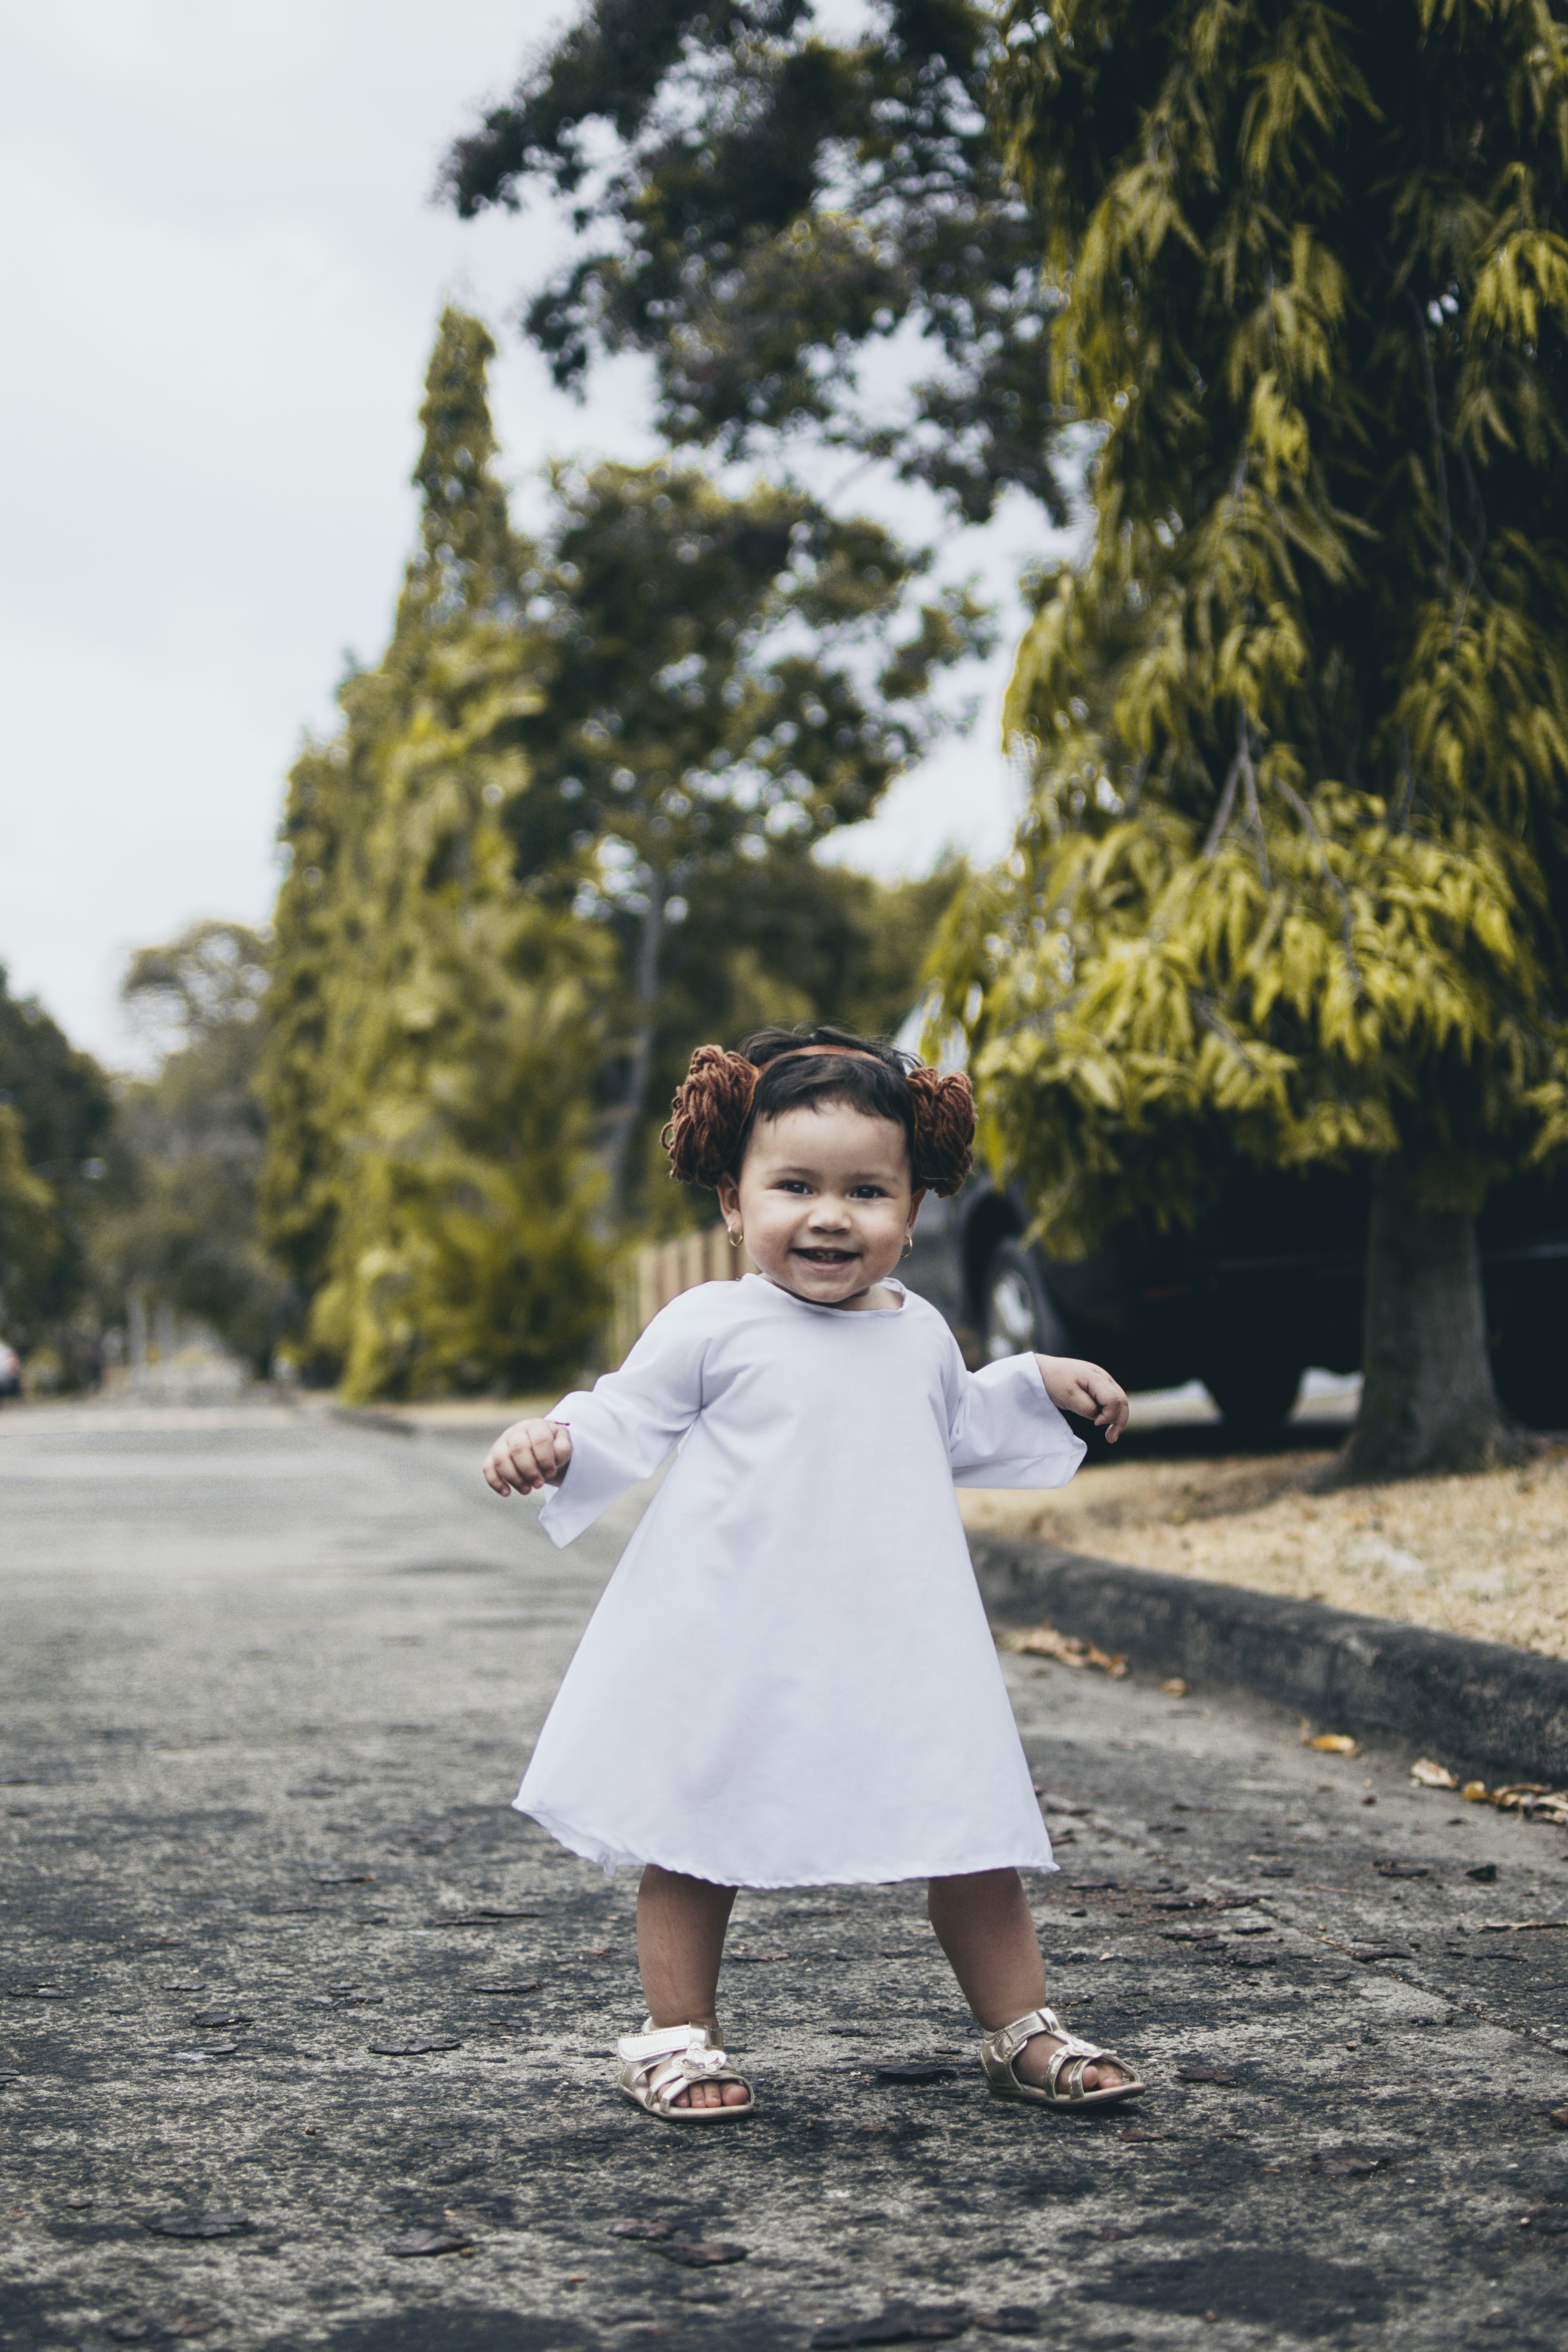 Smiling Baby Girl Wearing White Dress Standing on Road